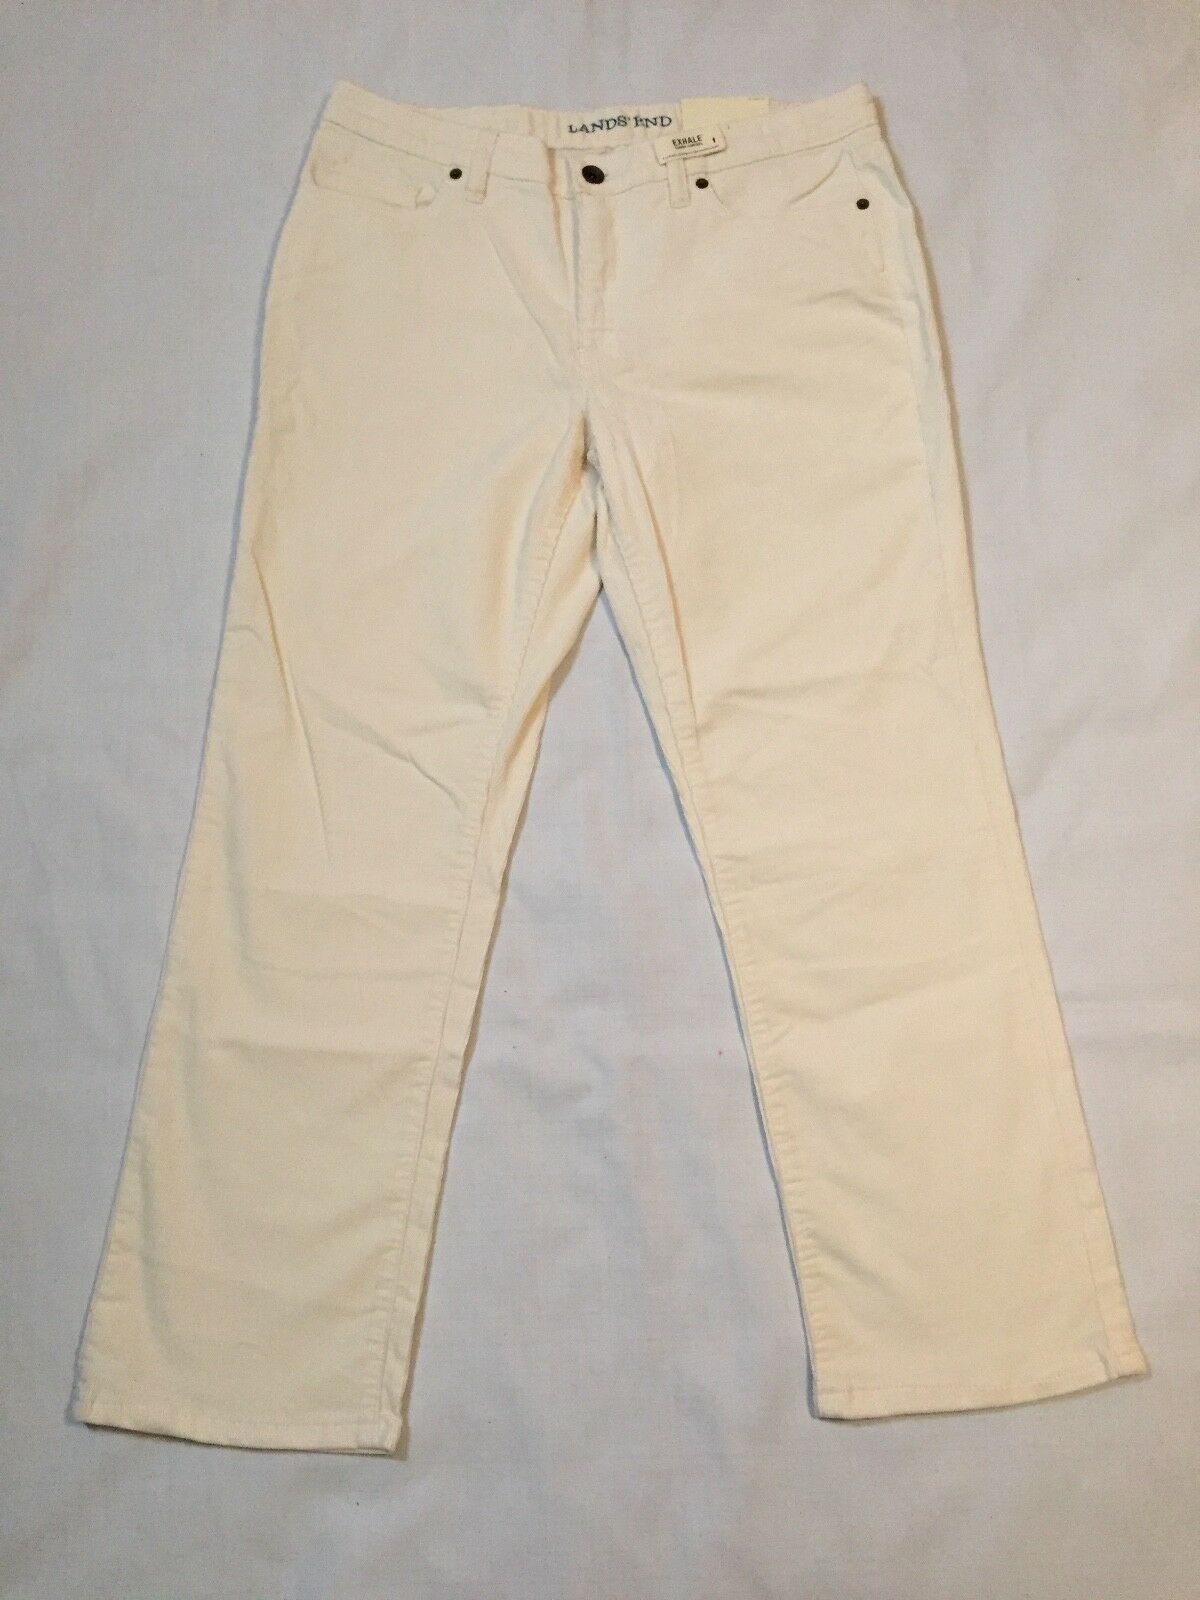 Lands' End Women's Corduroy Straight Leg Pants Size 10 New with Tags